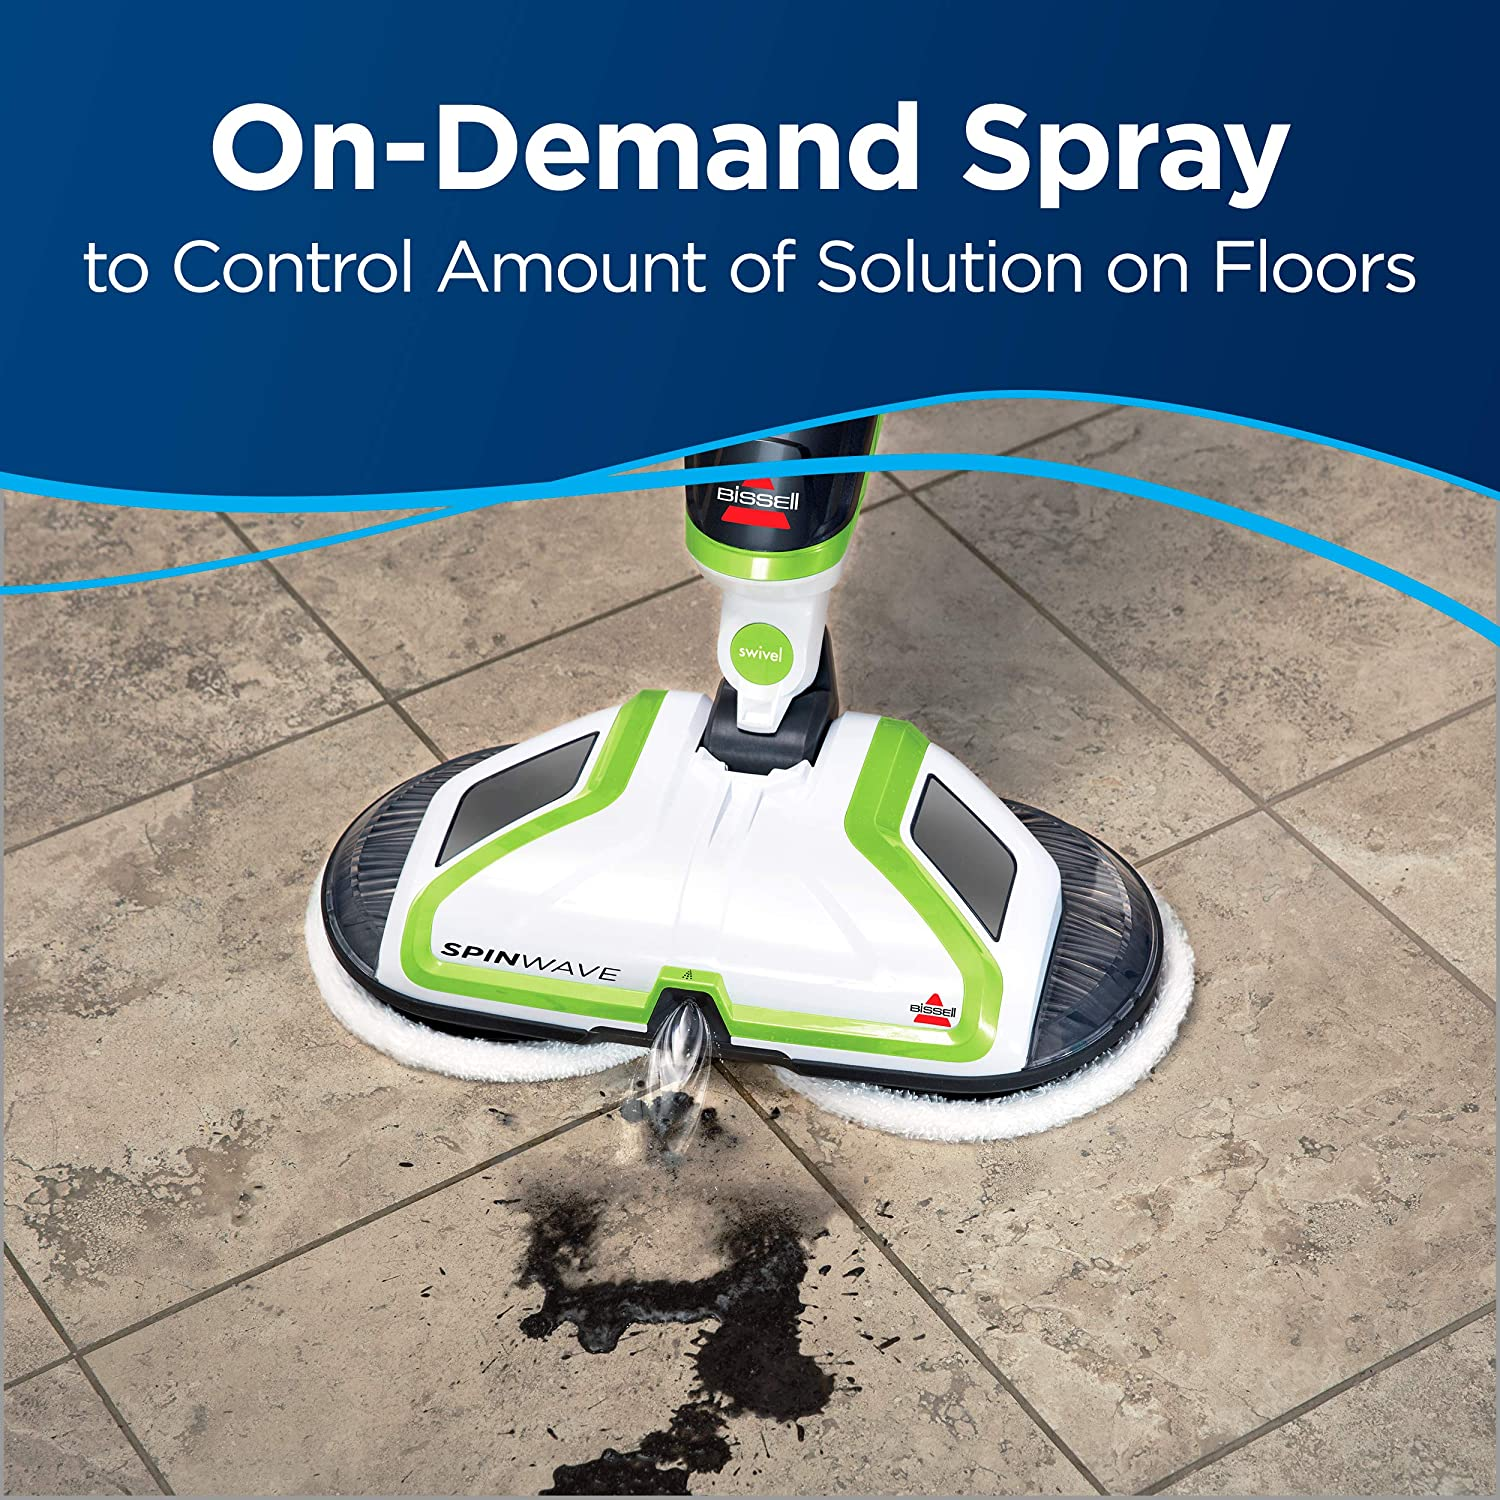 bissell spinwave spray on demand